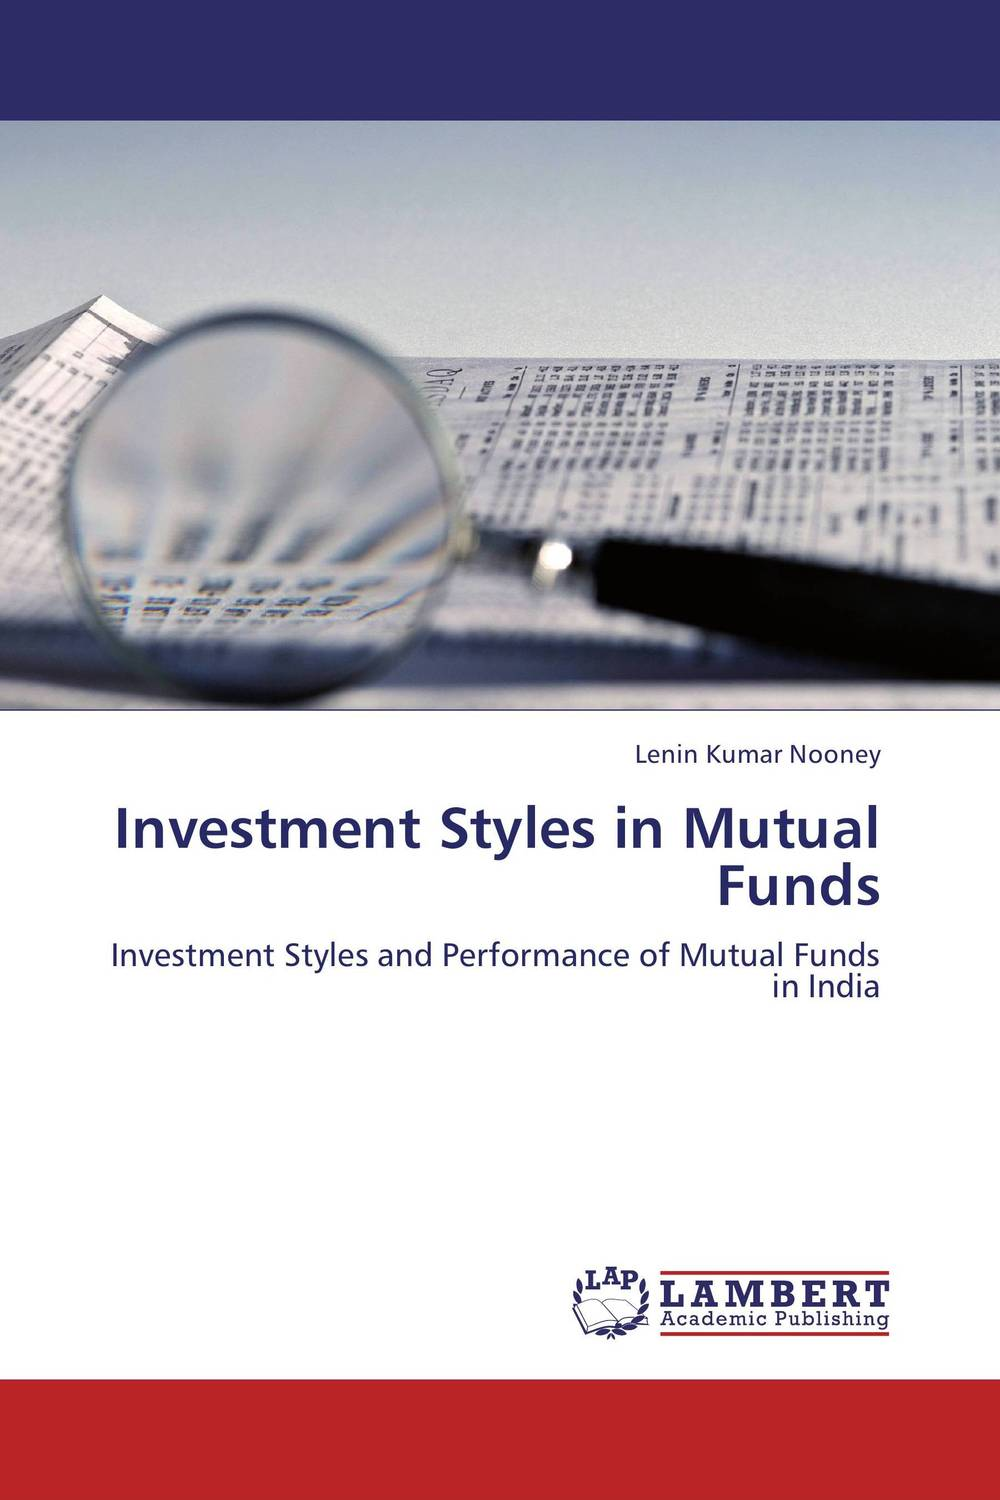 Investment Styles in Mutual Funds john haslem a mutual funds portfolio structures analysis management and stewardship